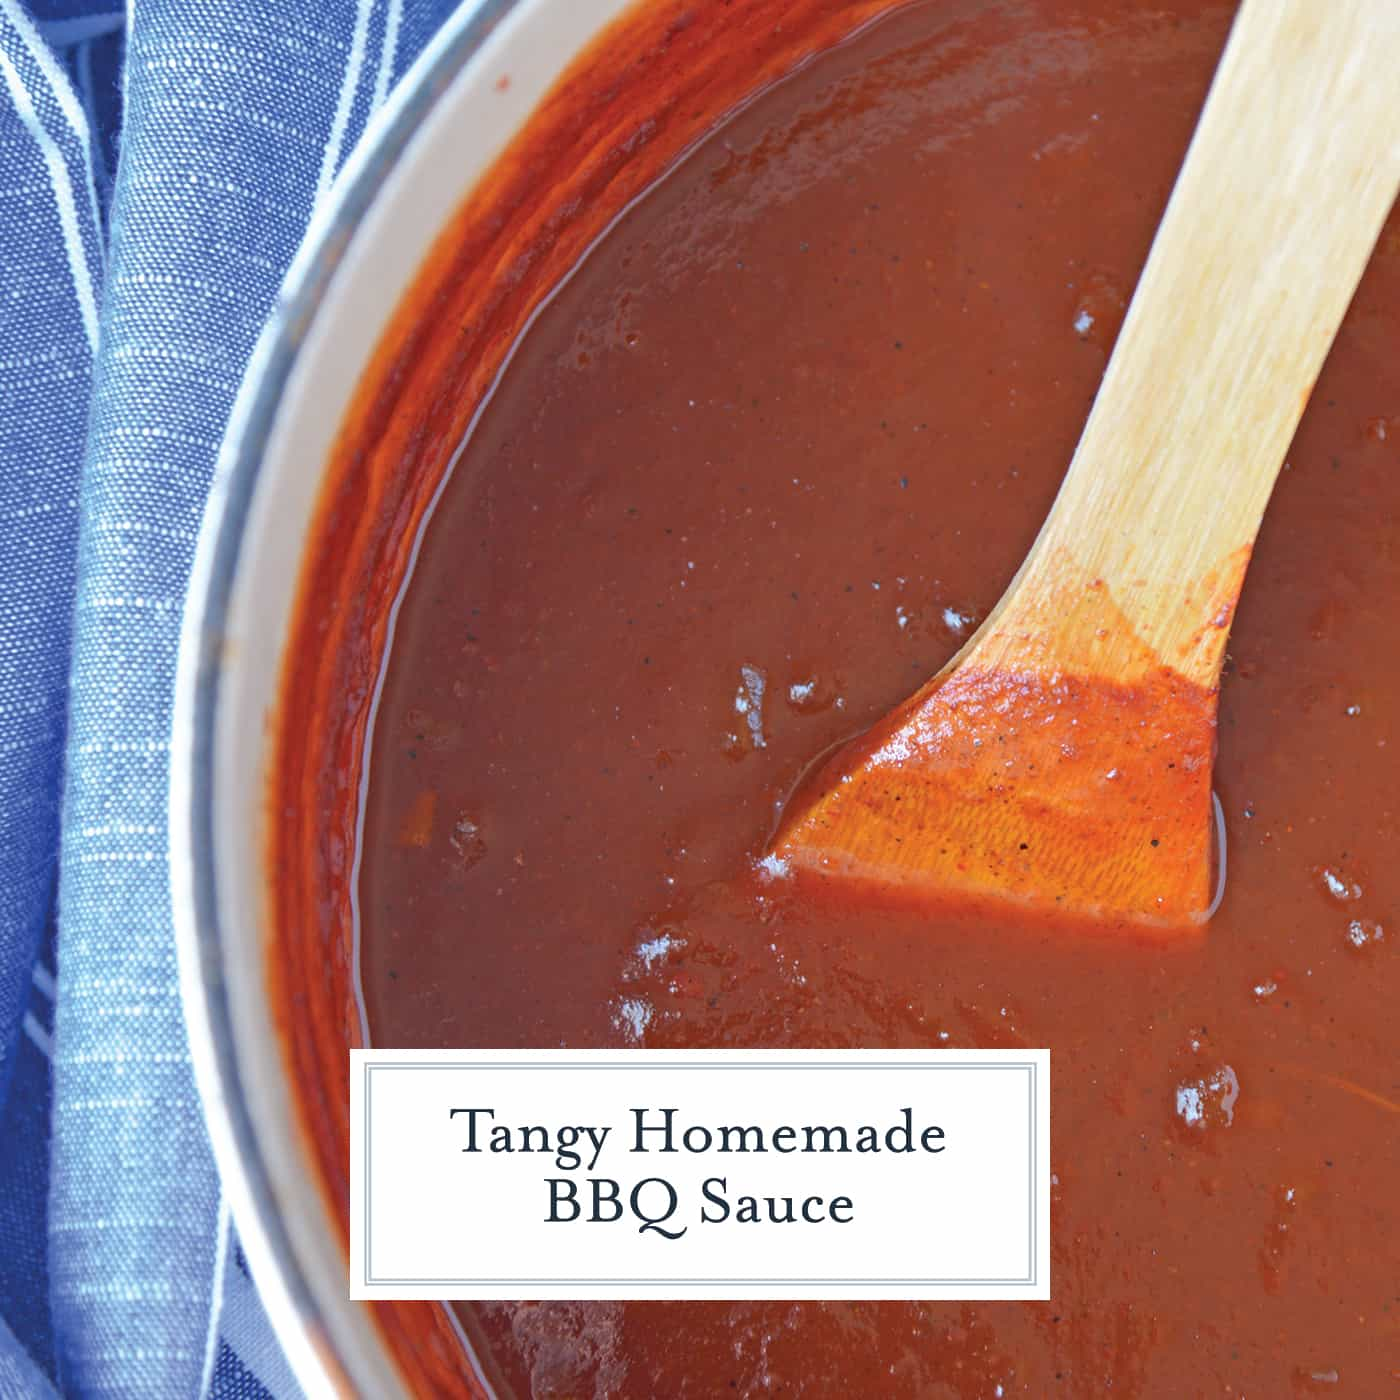 Homemade BBQ Sauce is an easy recipe that you can make at home! All you need is some ketchup, onion, lemon juice, Worcestershire sauce, vinegar, and spices! #BBQsauce #homemadeBBQsauce #bestBBQsaucerecipe www.savoryexperiments.com